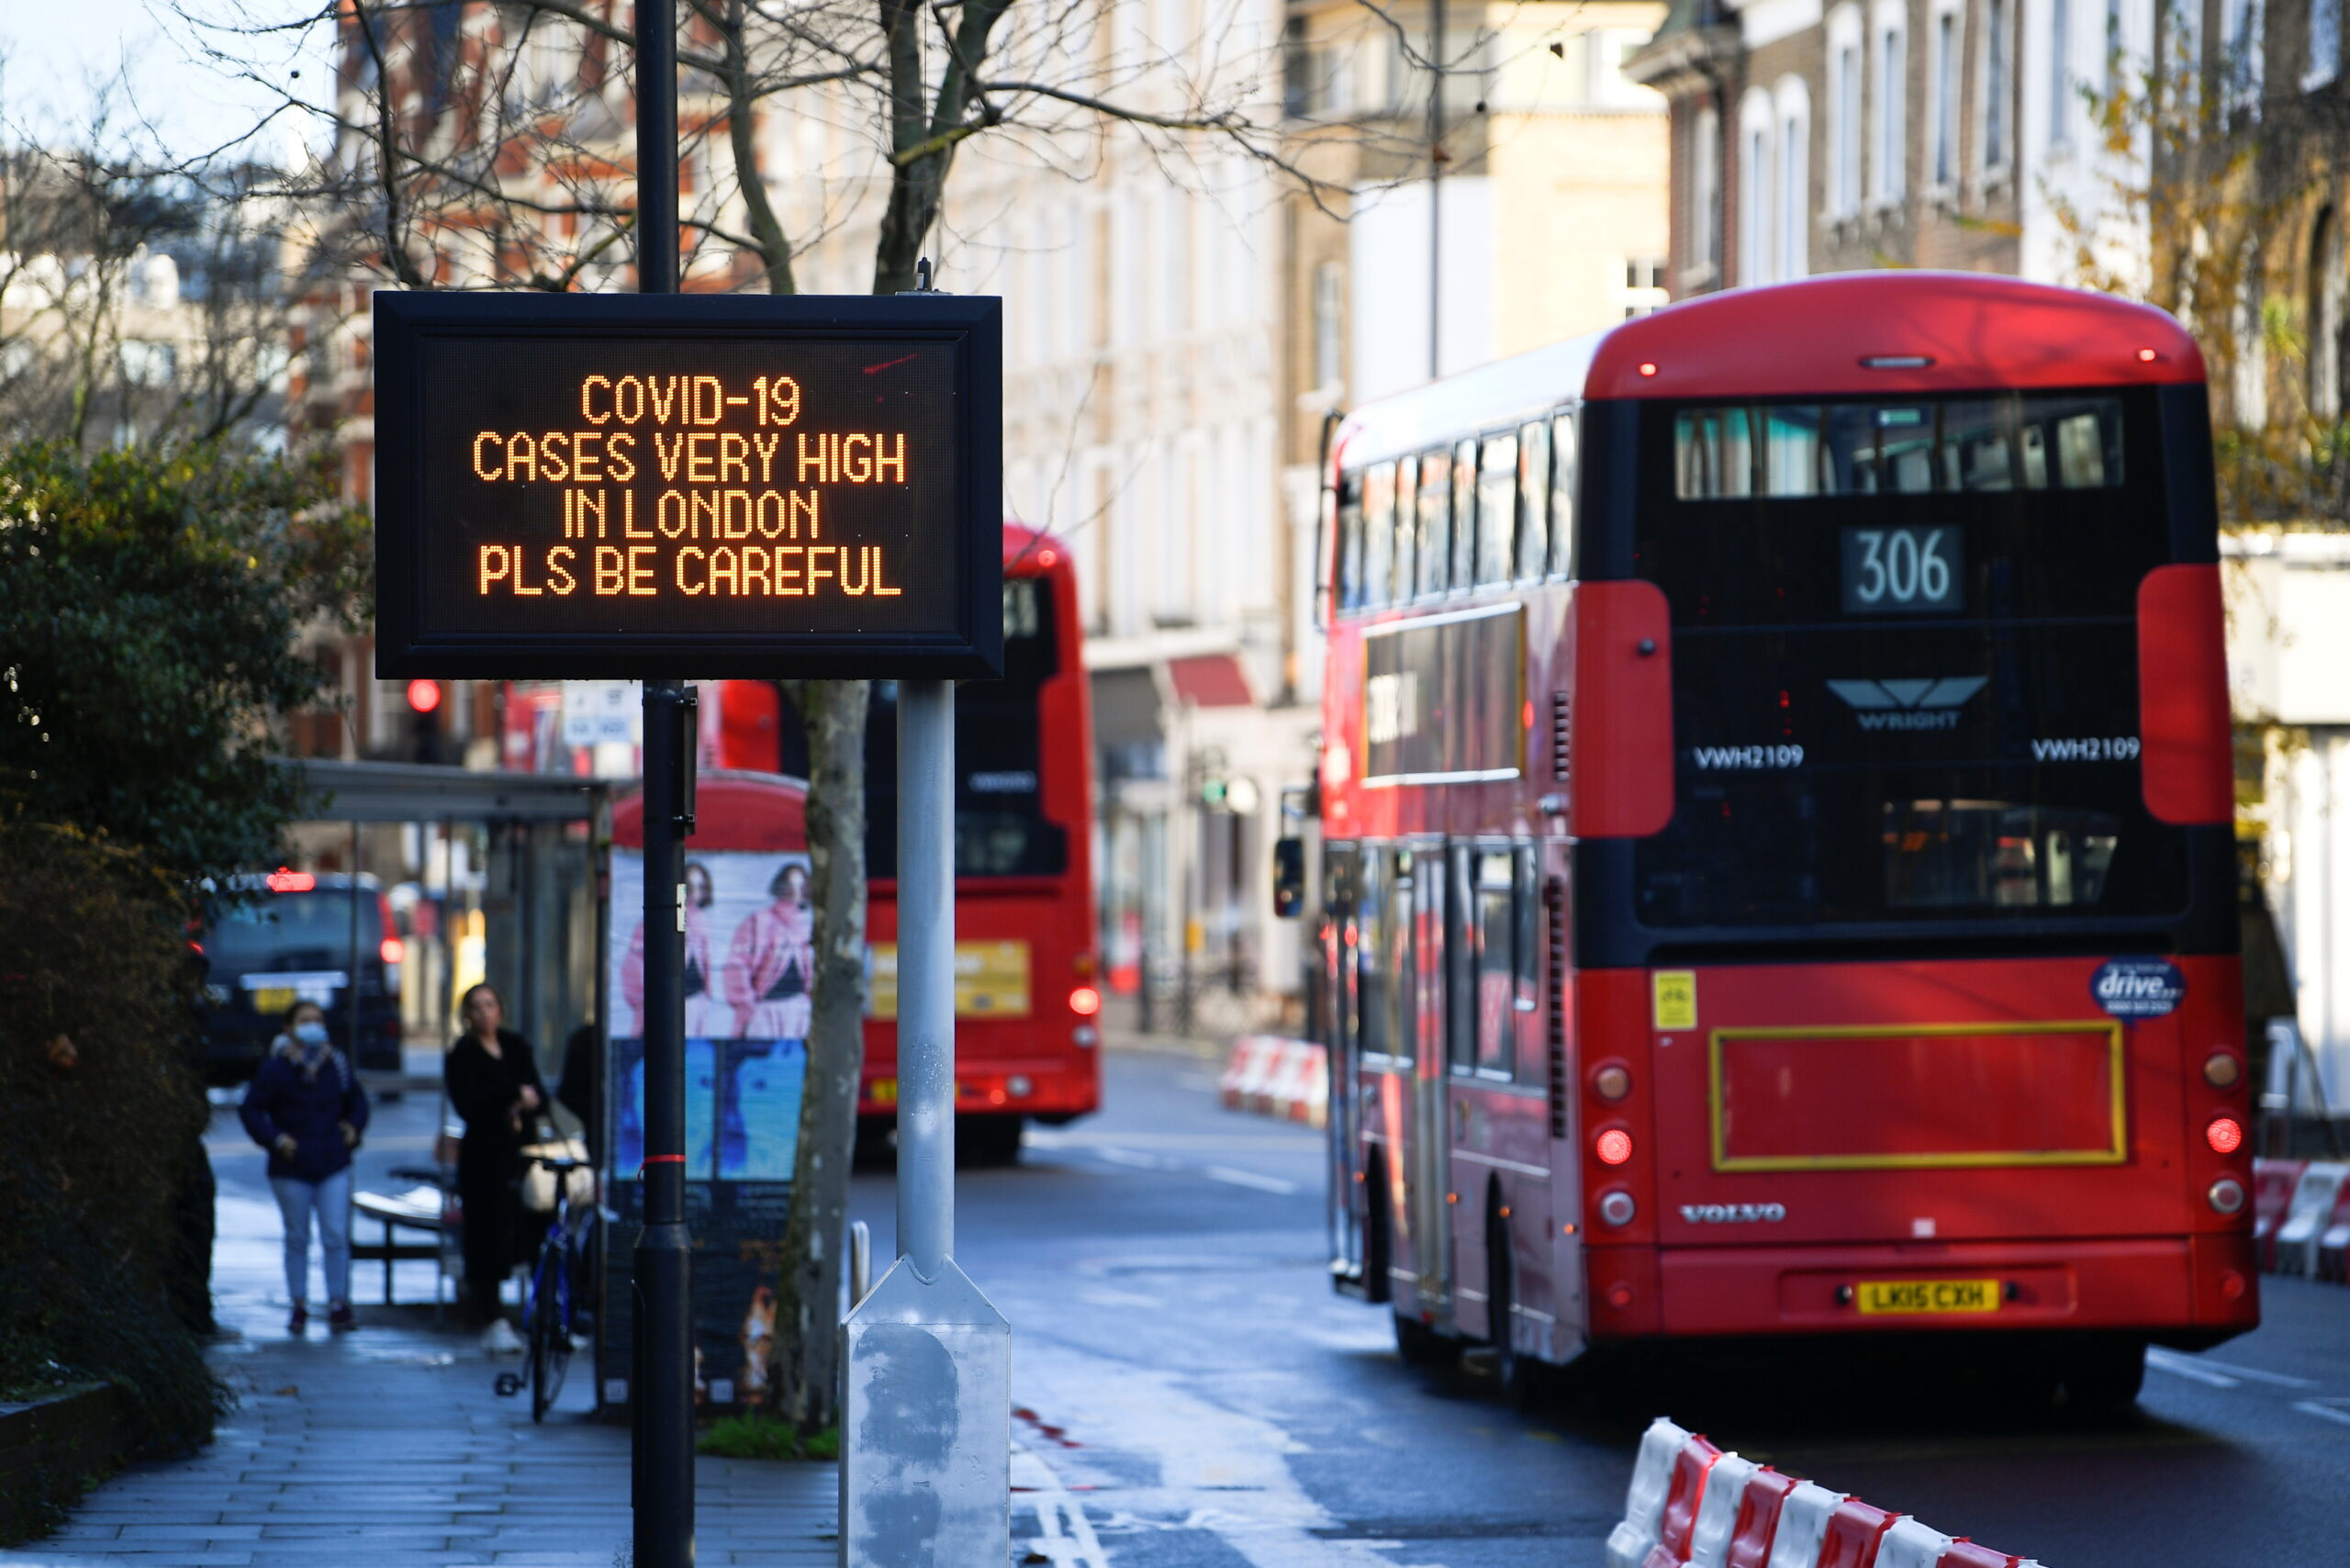 Busses pass a sign with a public health information message, amid the spread of the coronavirus disease (COVID-19), as new restrictions come into force, in London, Britain, December 20, 2020. REUTERS/Toby Melville